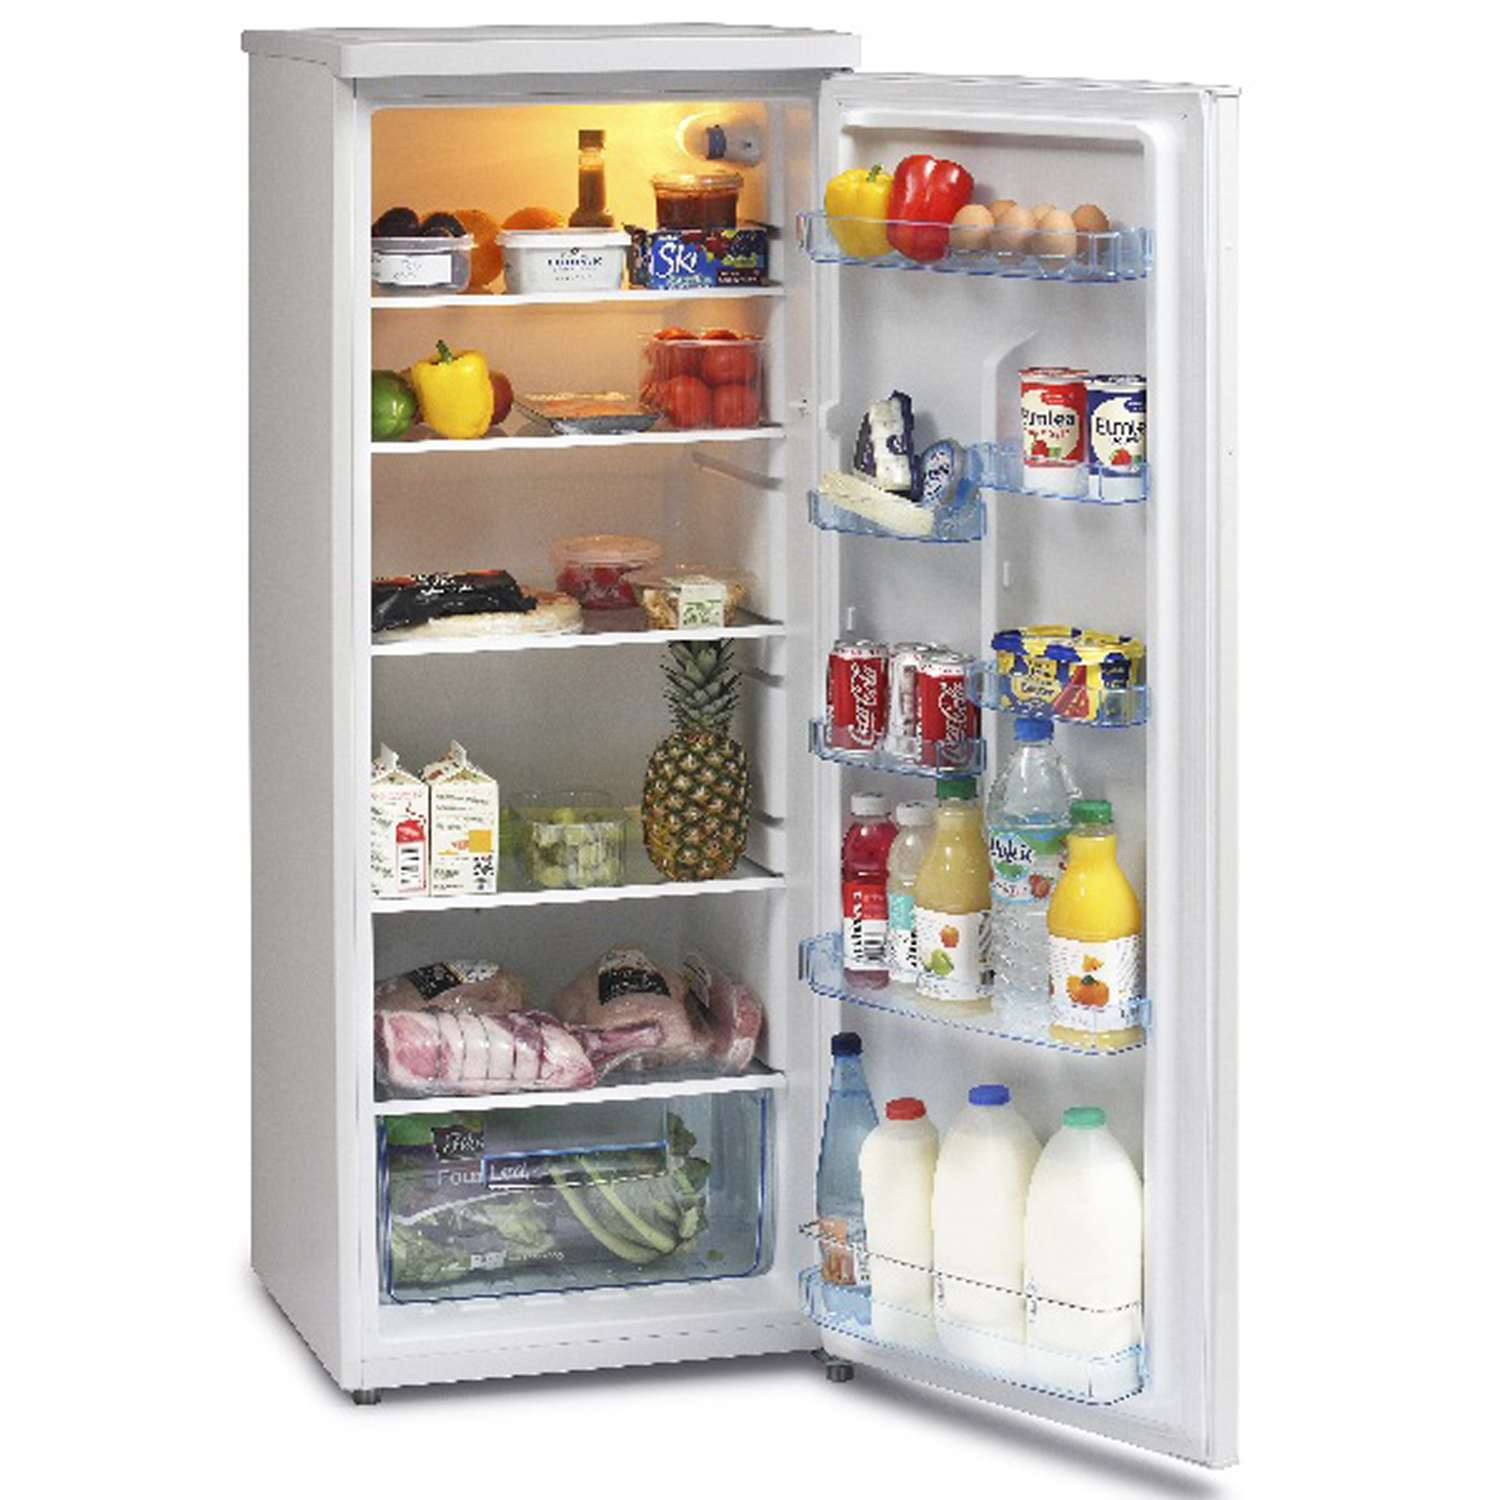 55Cm tall larder fridge